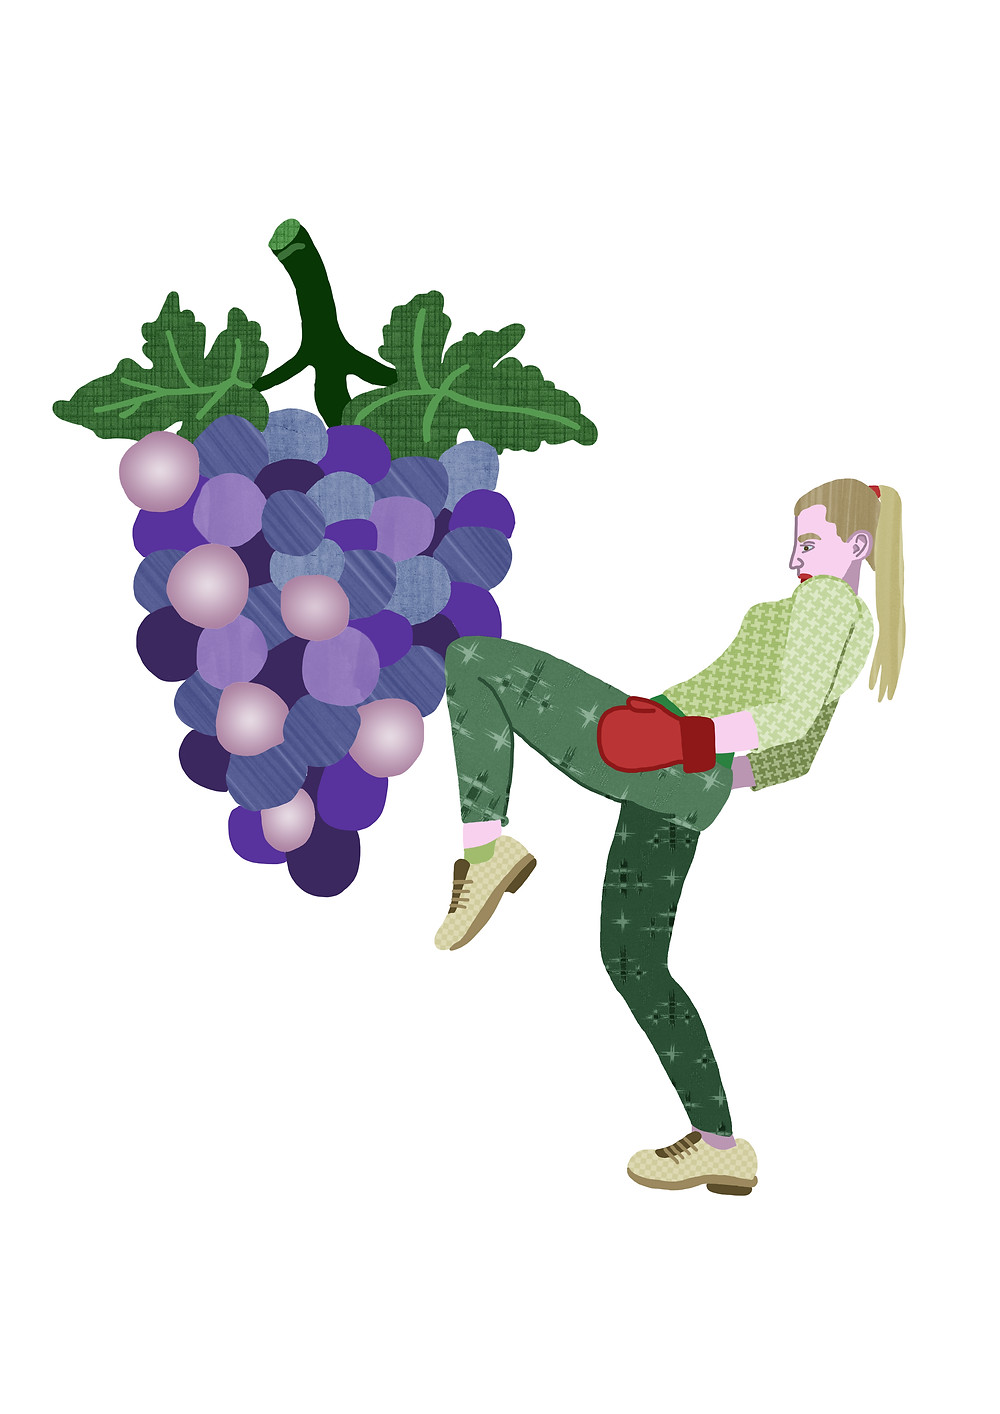 I've made a series of illustrations called 'Get Fit With Fruit' and this grape boxer is one of them